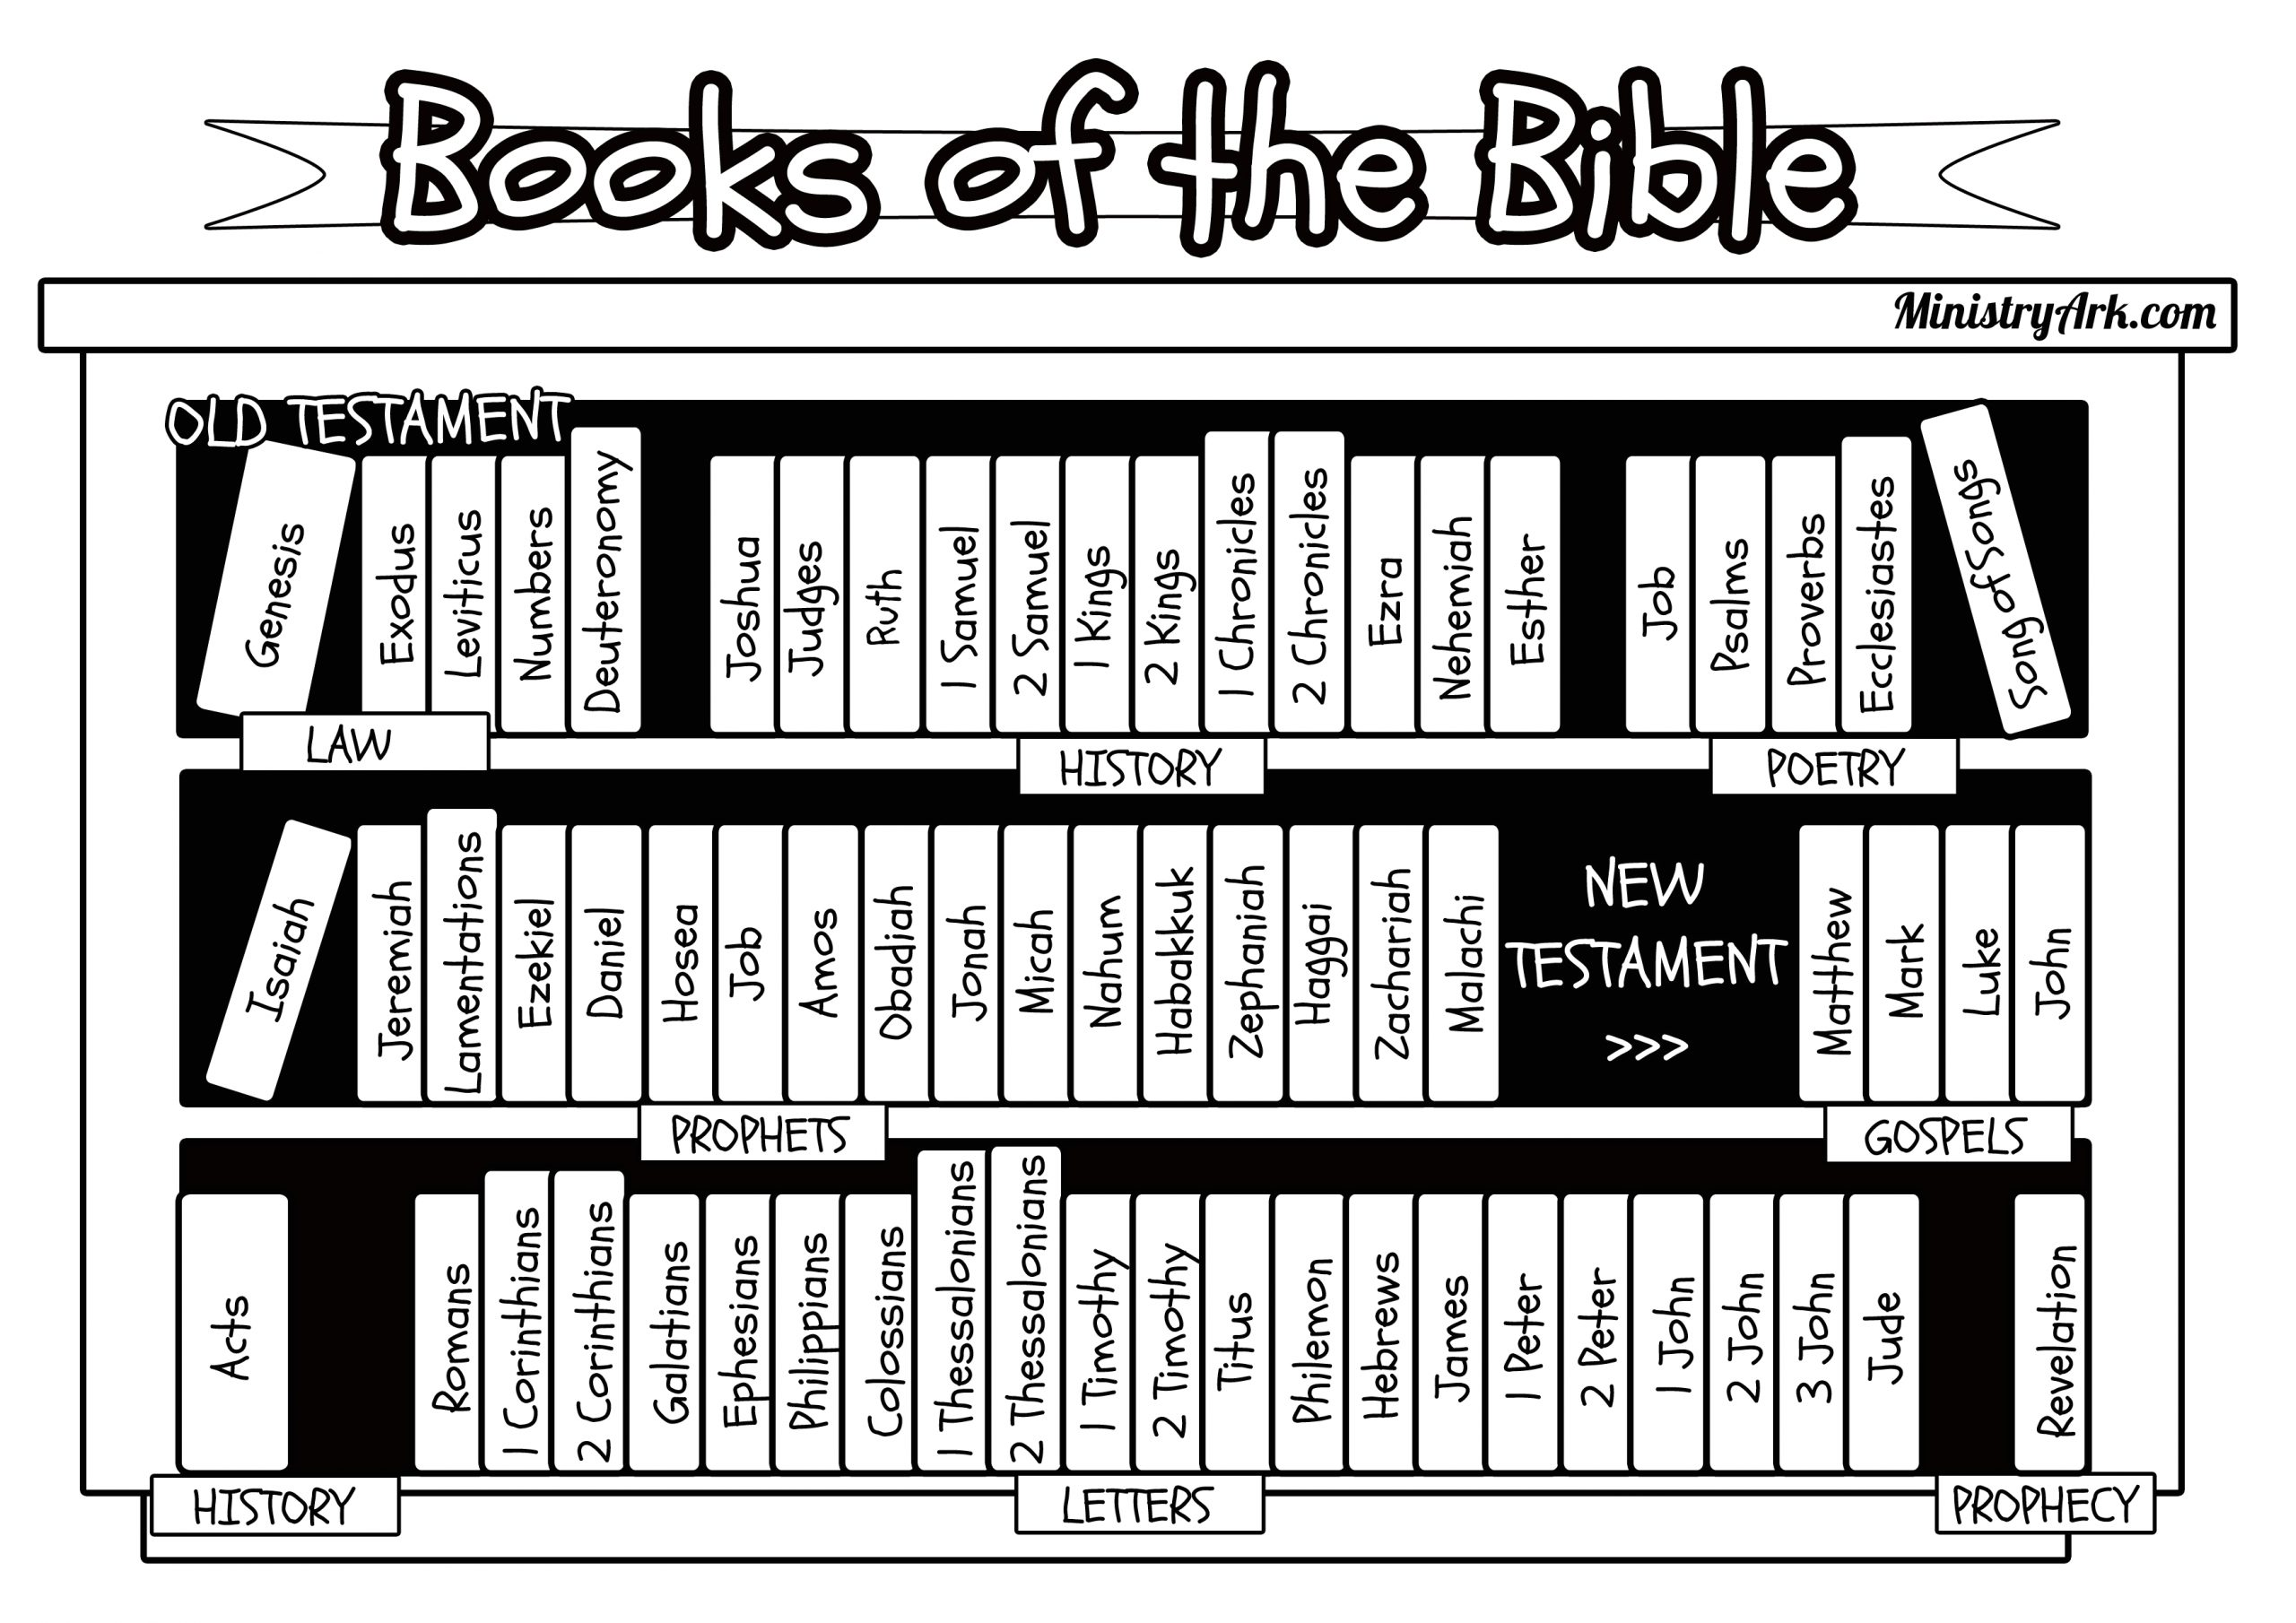 Free Printable Books Of the Bible Coloring Pages Bible Coloring Pages